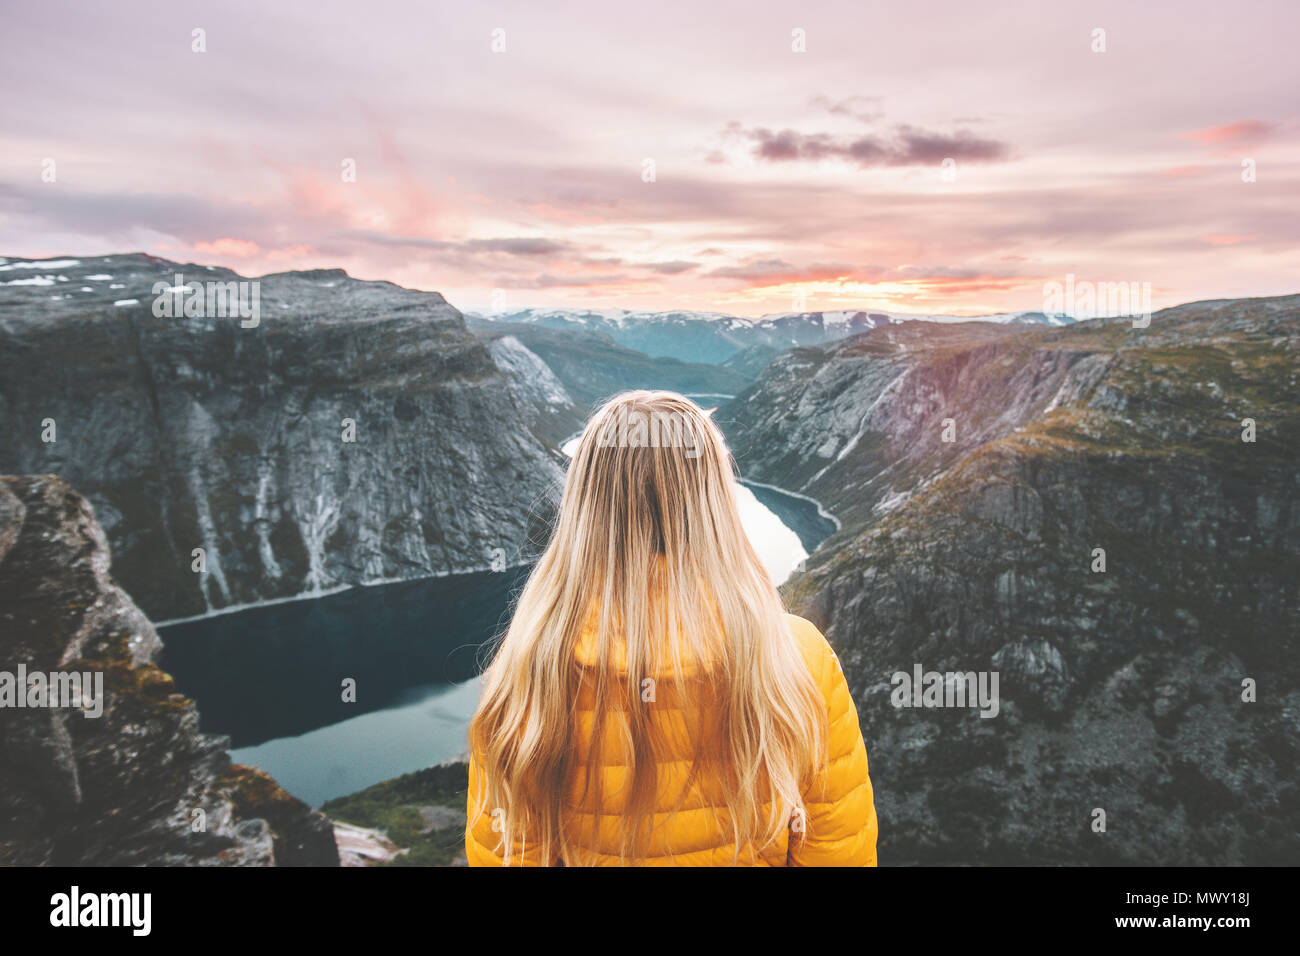 Woman traveling alone enjoying sunset mountains landscape adventure trip lifestyle vacations weekend getaway aerial Norway lake landscape - Stock Image